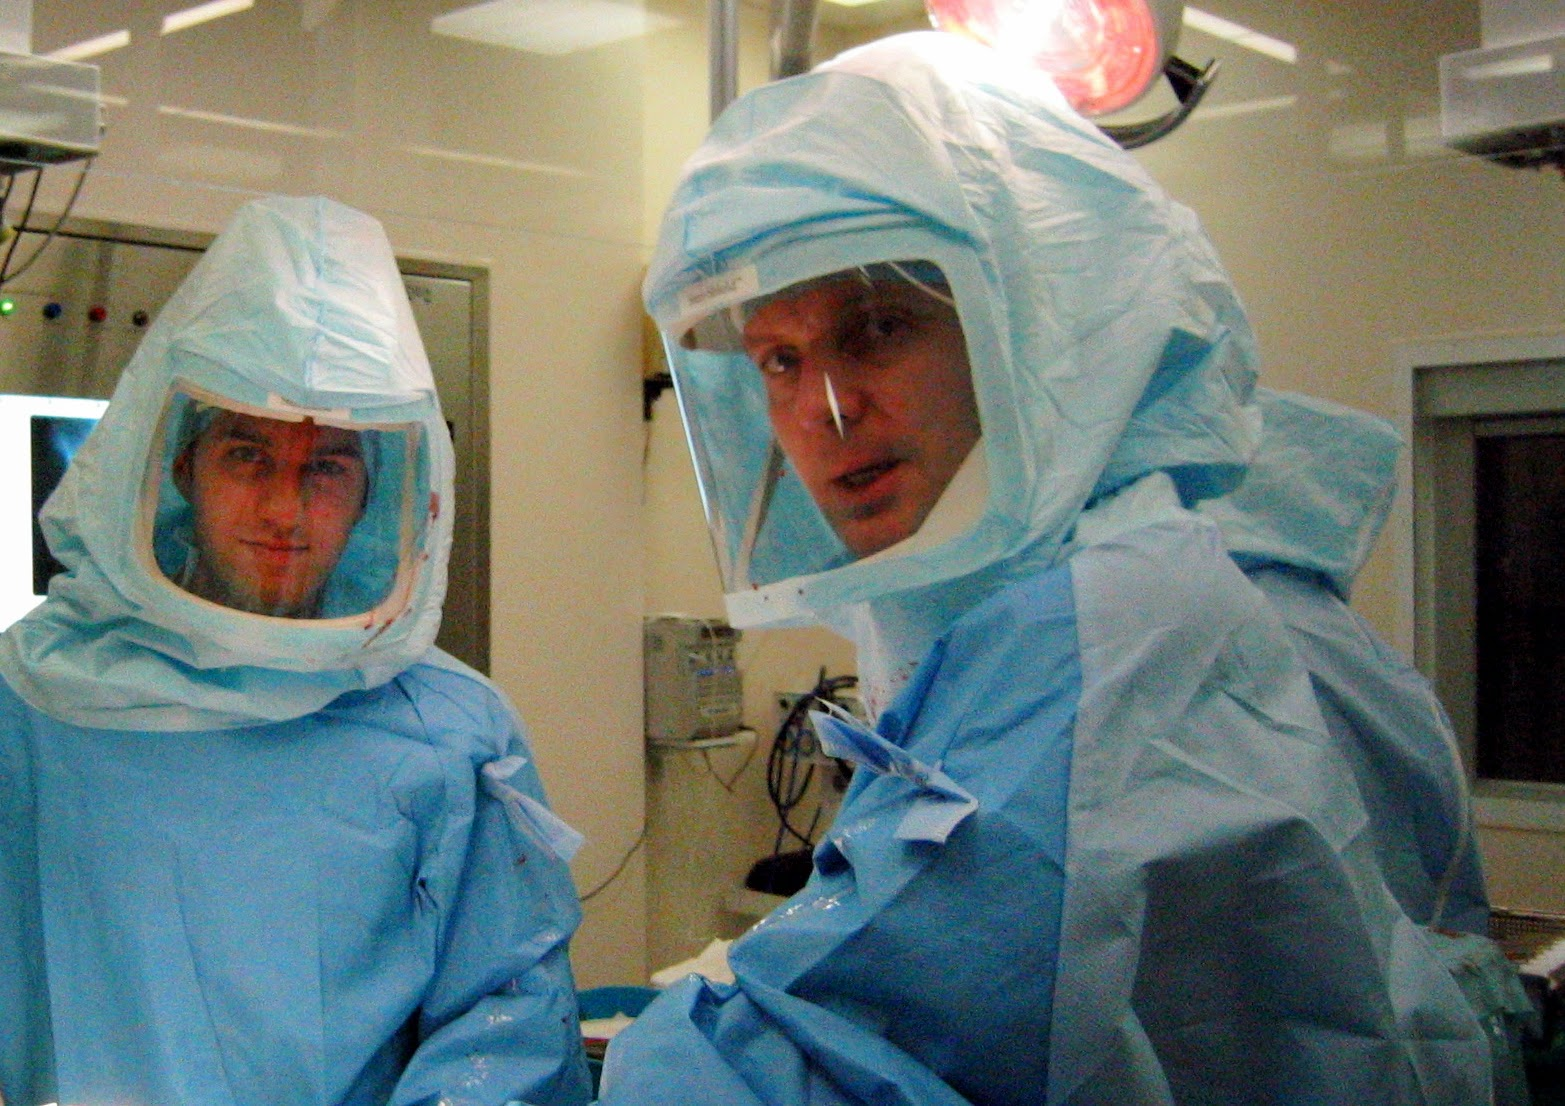 """Mr. John Timperley  (direita) e Dr. David Gusmão durante cirurgia em Exeter, Inglaterra. Veja o que dizem sobre Mr. Timperley: """"Everything he does is to the highest level, from the preparation through to the procedure and aftercare. He is the leader of evidence-based hip surgery using tried-and-trusted techniques.   There are four hip surgeons at Exeter and all are outstanding. This unit has pioneered and refined the way we do hip replacement in this country."""""""